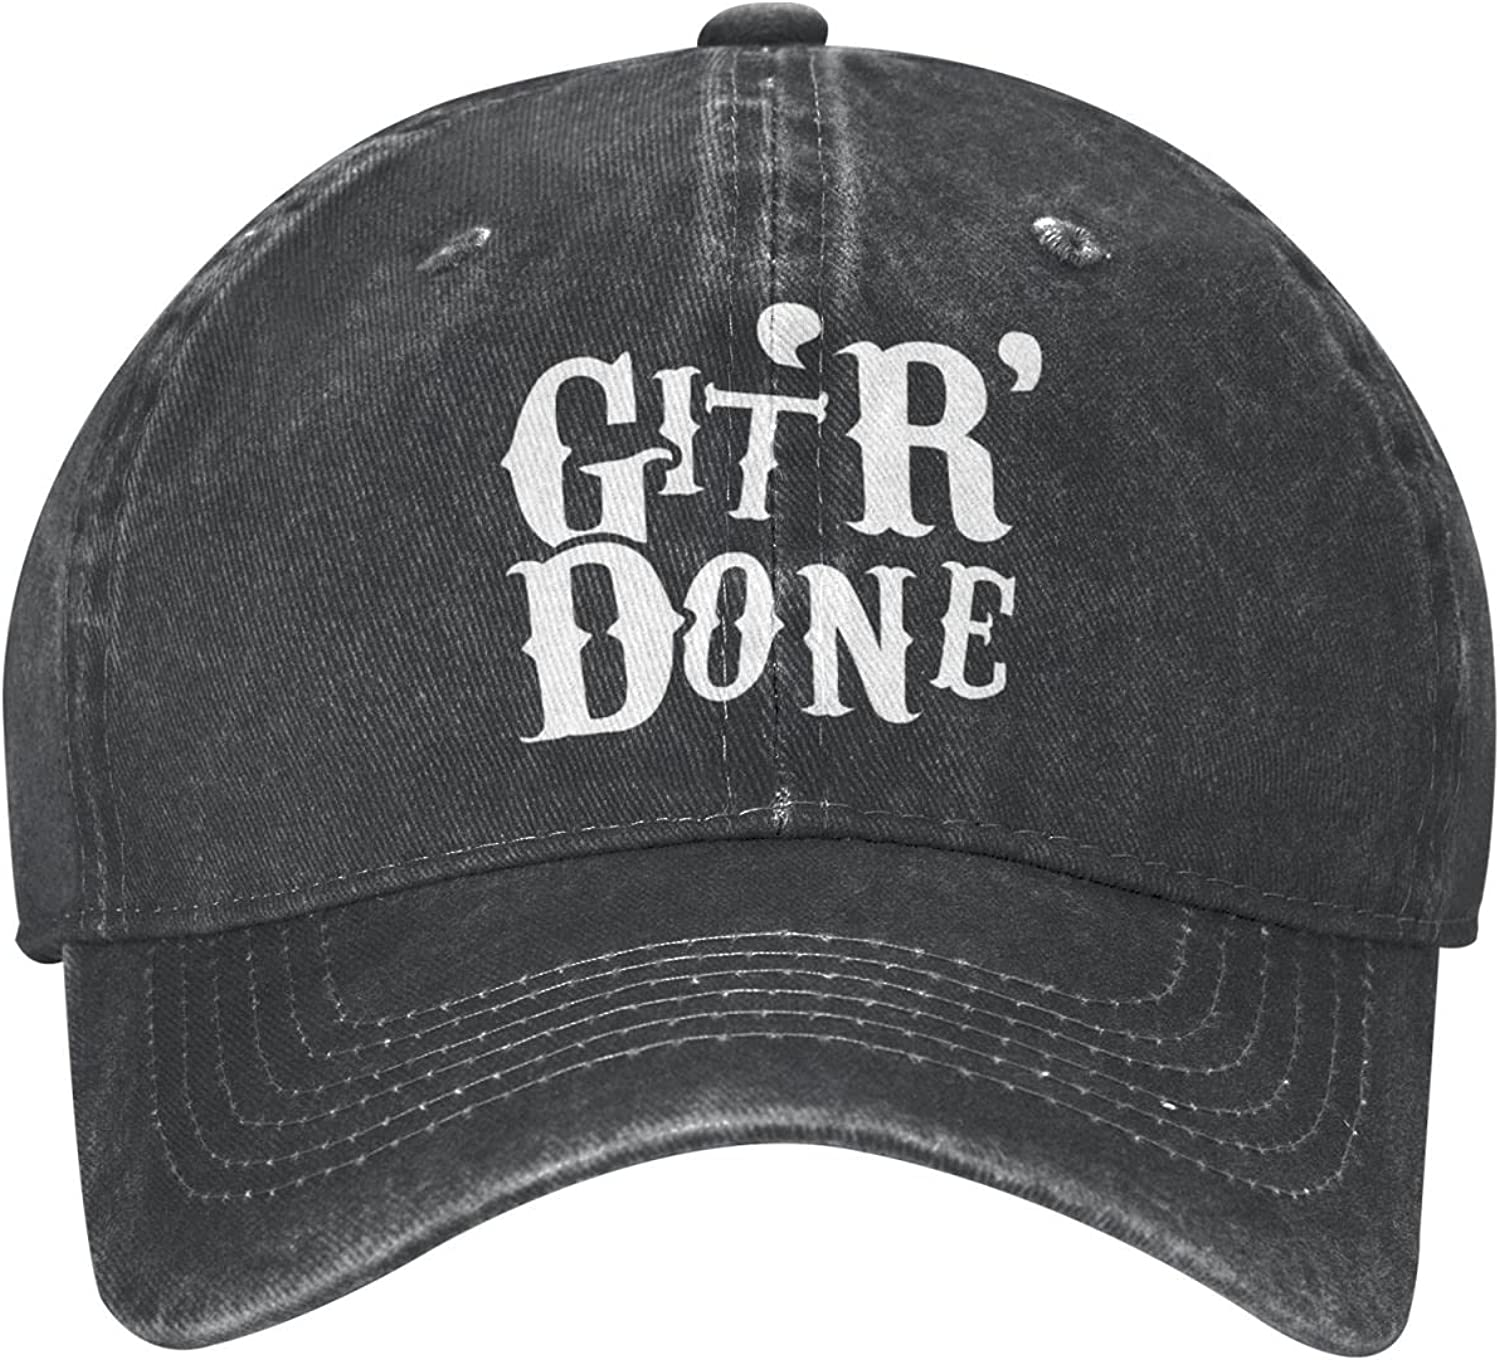 Get Er Done Funny Hat Baseball Cap Dad and Mom Caps Trucker Hats Adjustable Unisex Cap Low Profile Comfortable Material Black